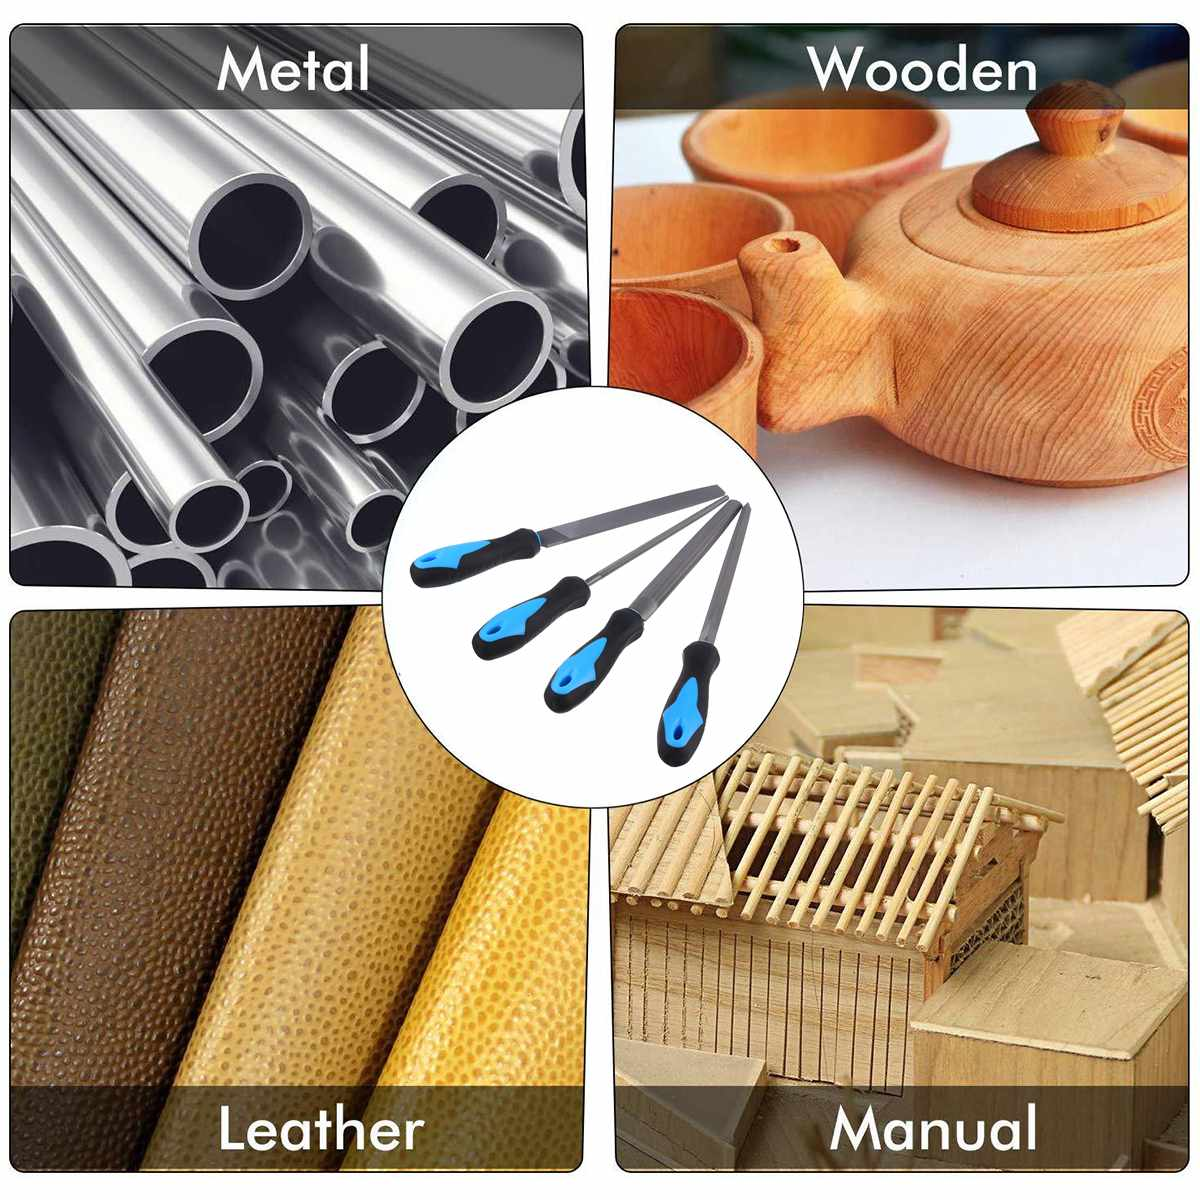 Steel Needle Sewing Files Tool Pcs Craft Hand Hand T12 Set 20 File Carbon Needle Tool Metal Set 200mm High File Carving Wood